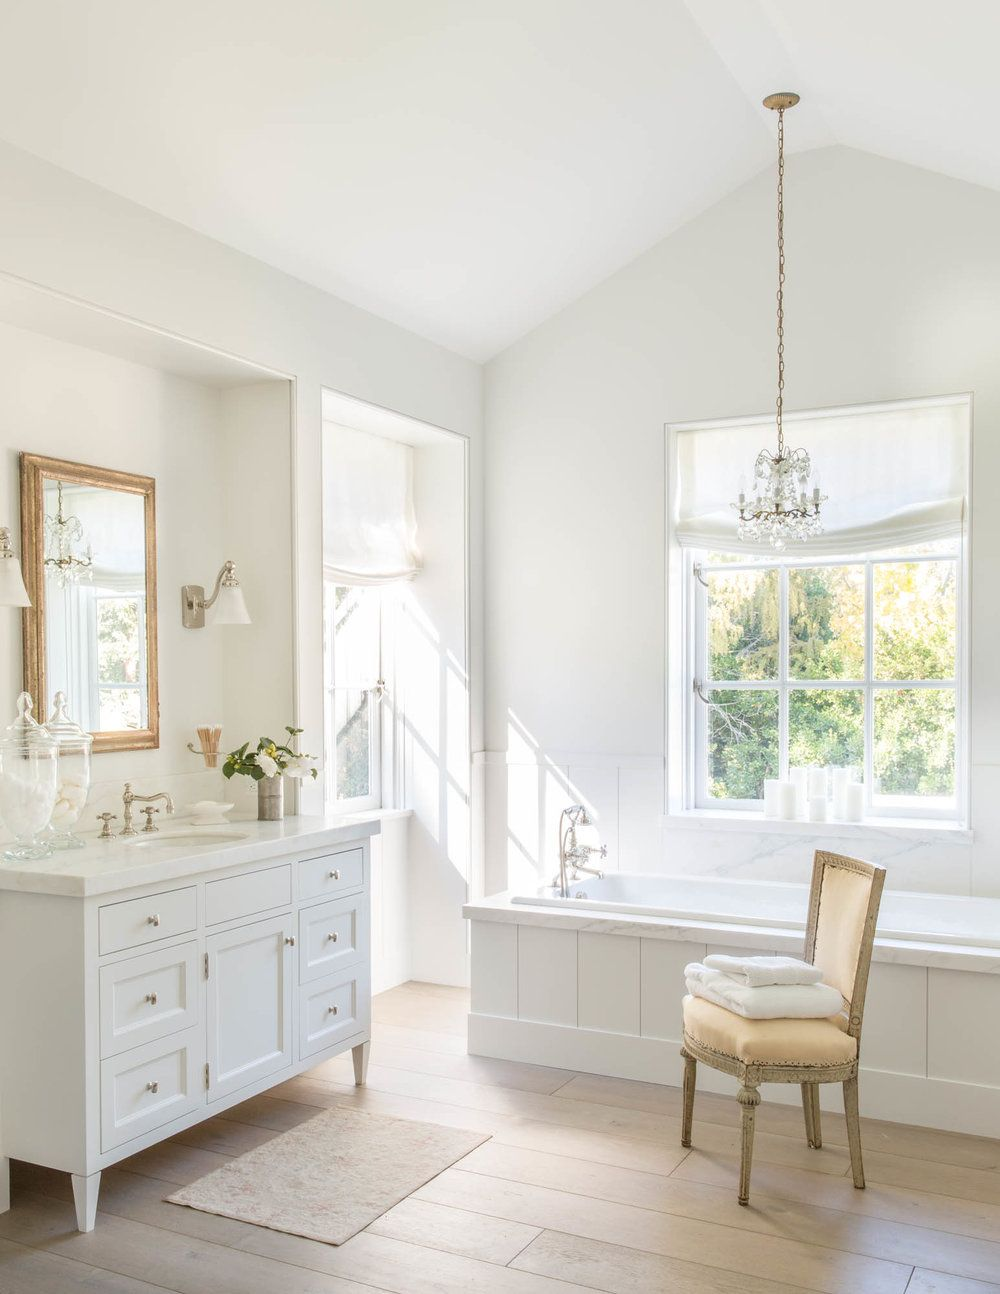 pictures to hang in master bathroom%0A Chic bathroom features a mini crystal chandelier hanging over a wainscoted  bathtub accented with a marble deck placed under a window dressed in a  white